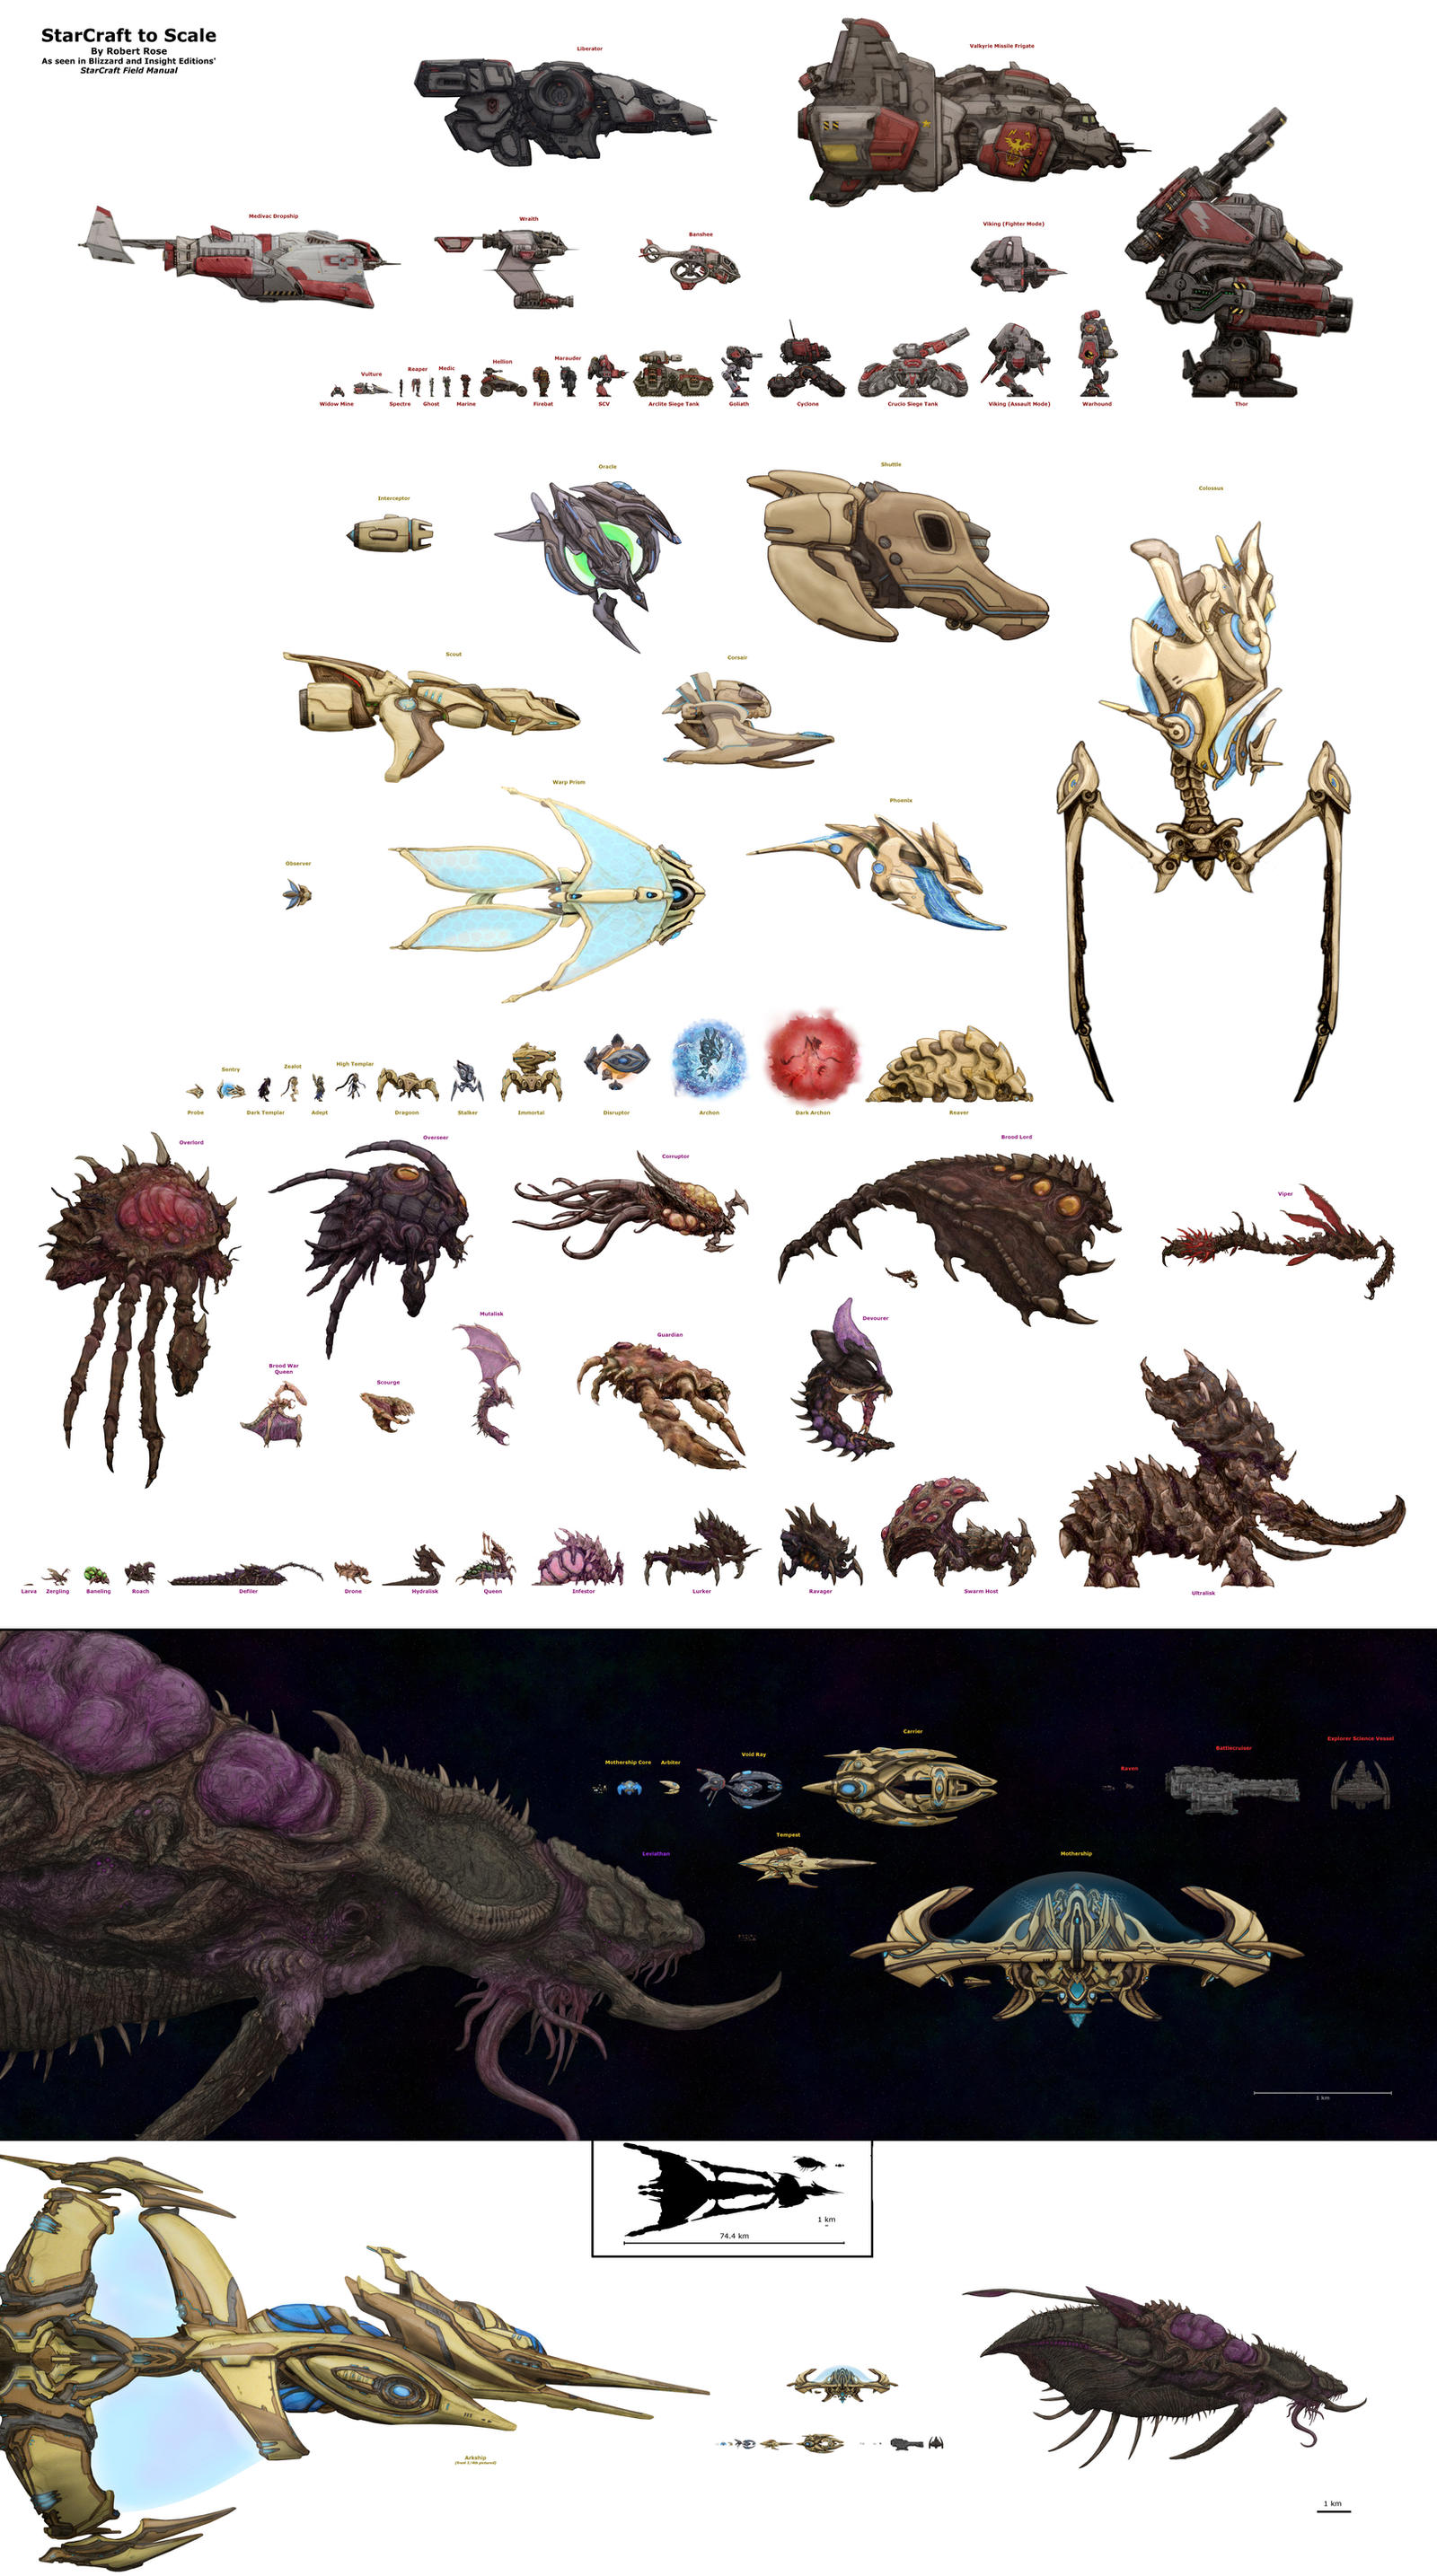 Starcraft to scale by xiaorobear on deviantart for Scale meaning in art